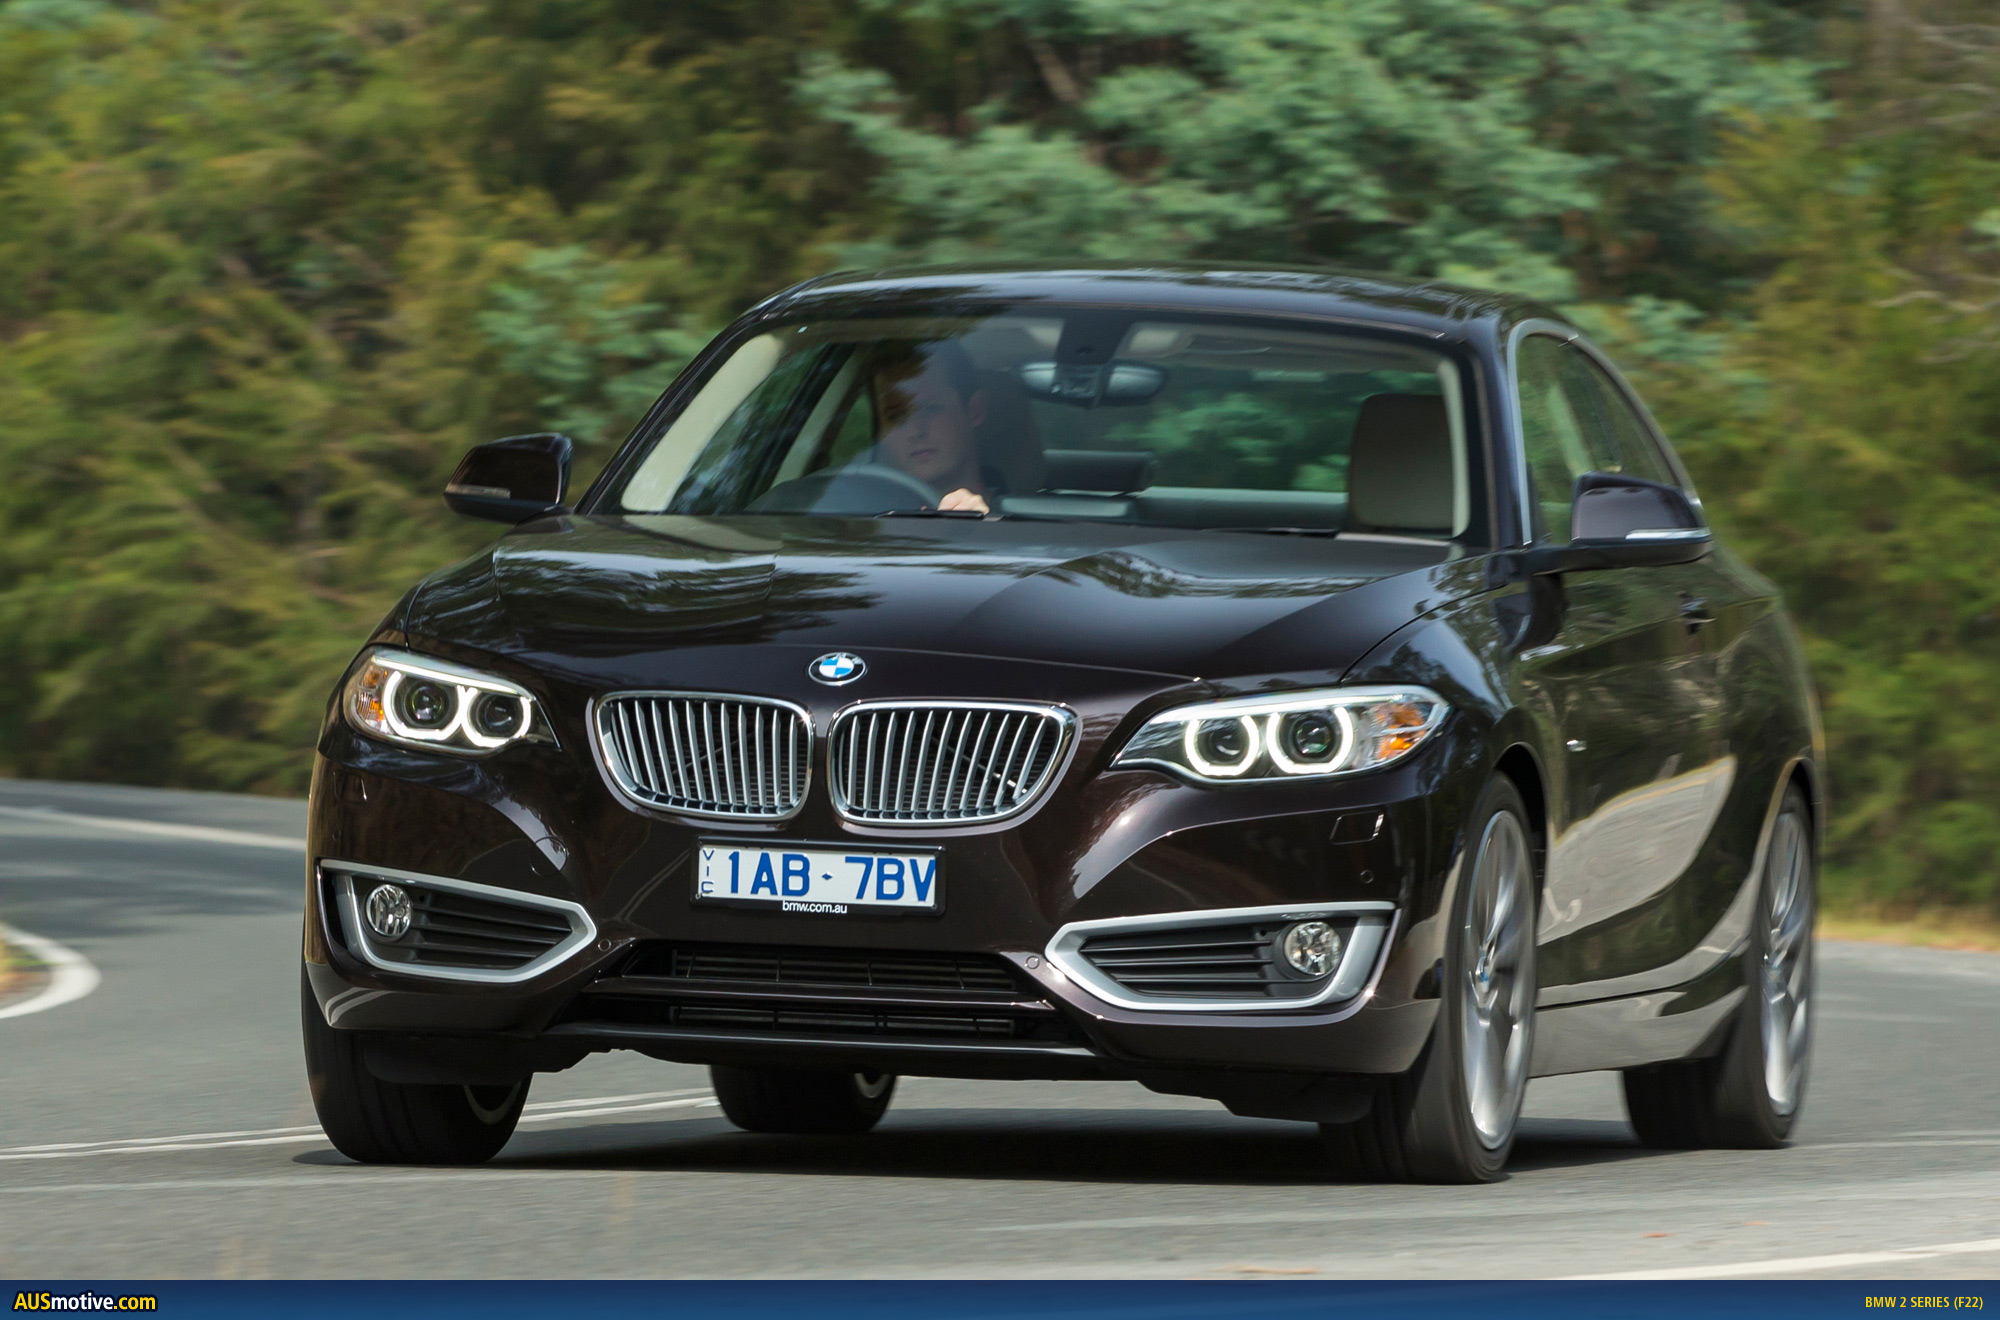 2014 bmw 2 series detailed pricing and specifications holidays oo - Bmw 2 series coupe dimensions ...